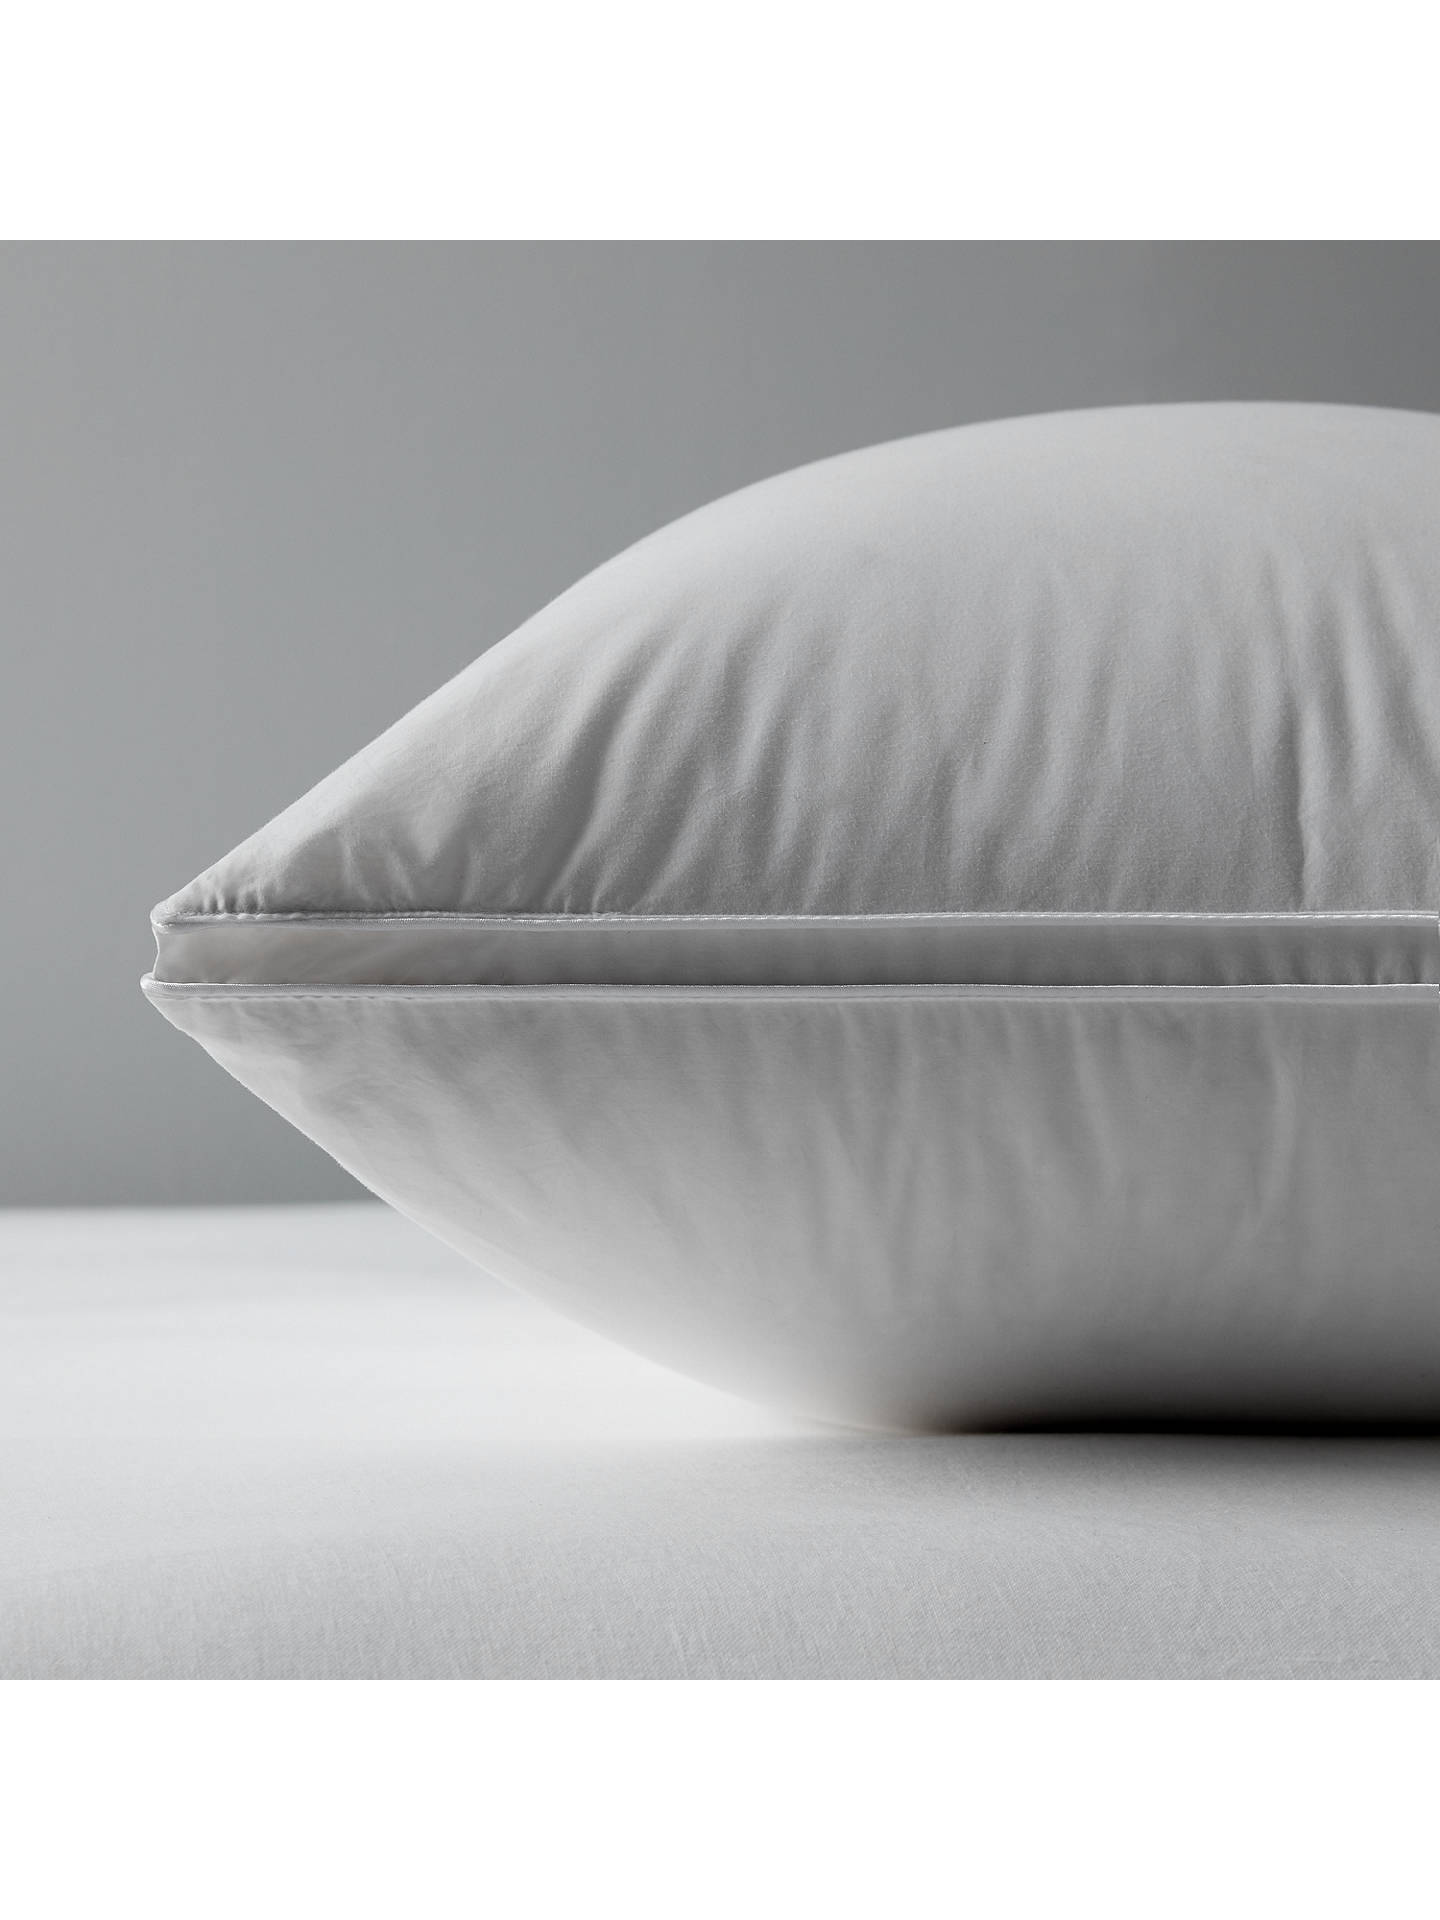 BuyJohn Lewis & Partners The Ultimate Collection British Goose Down Kingsize Pillow, Medium/Firm Online at johnlewis.com